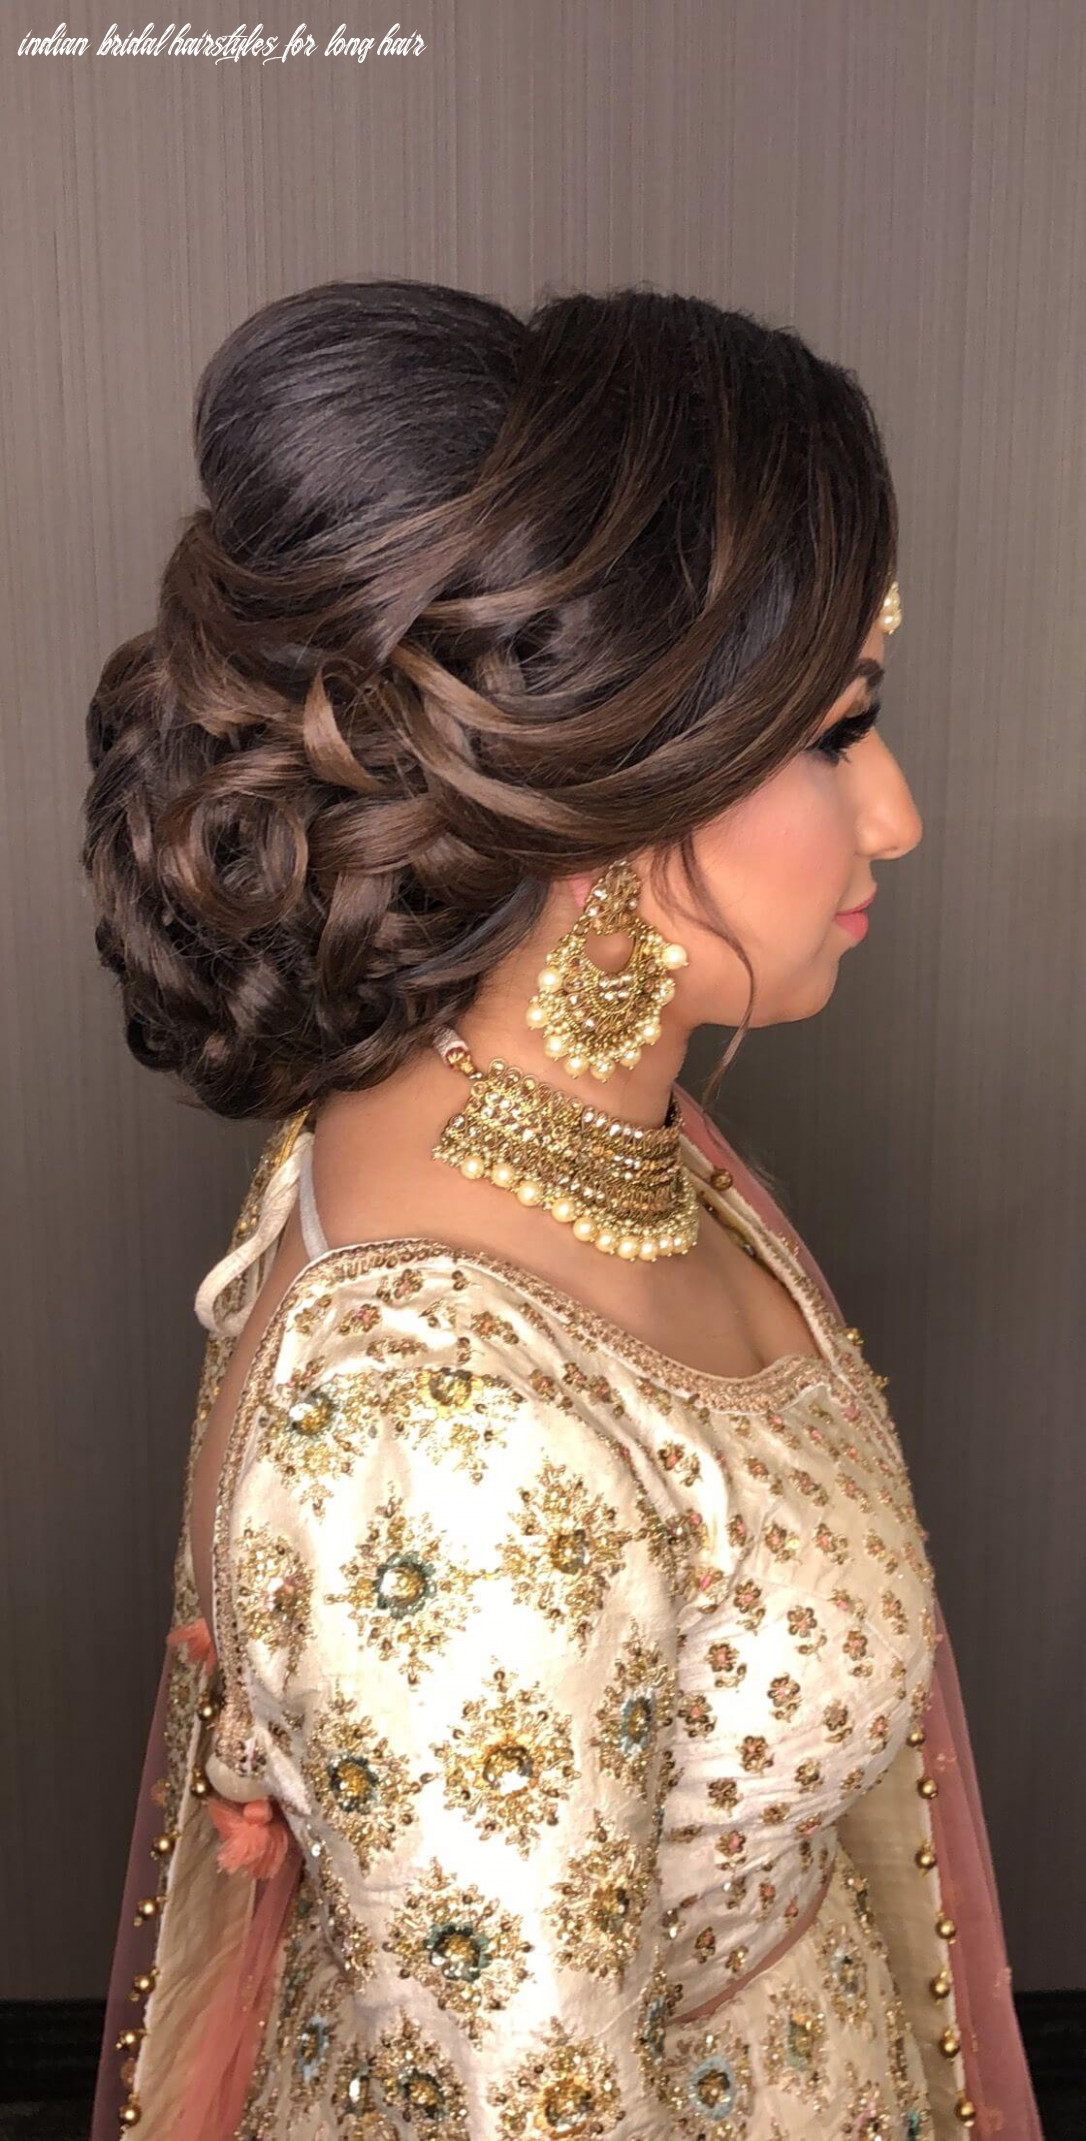 Hairstyles for Short Hair for Indian Wedding - 12+